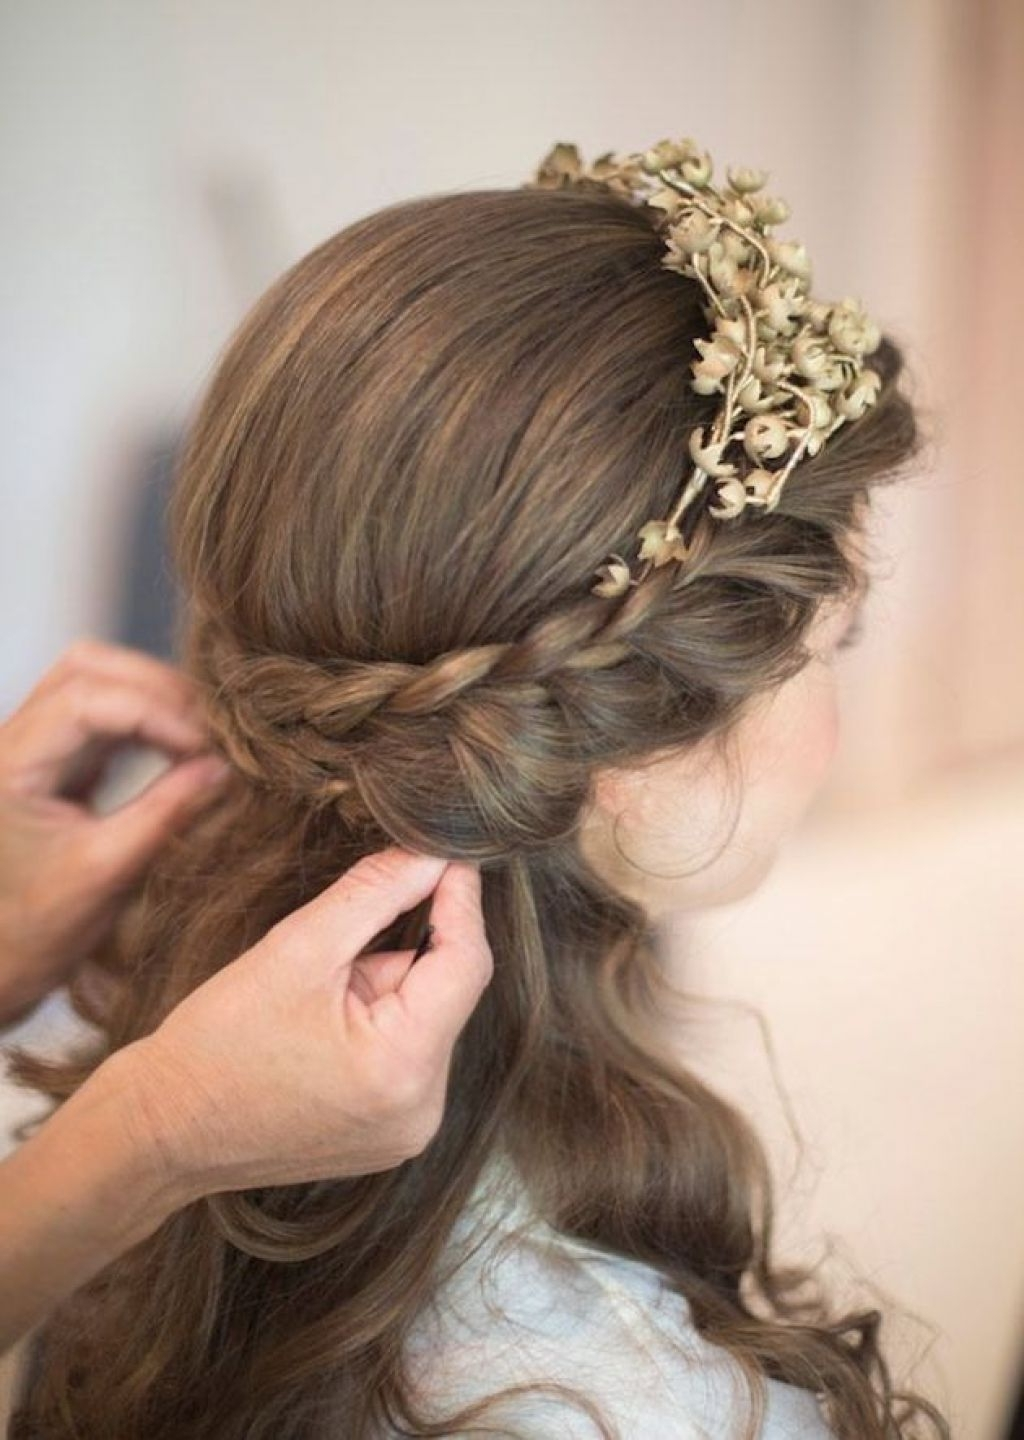 Stunning Wedding Hairstyles For Medium Length Hair Half Up Down Intended For Famous Wedding Hairstyles For Short Length Hair Down (View 11 of 15)